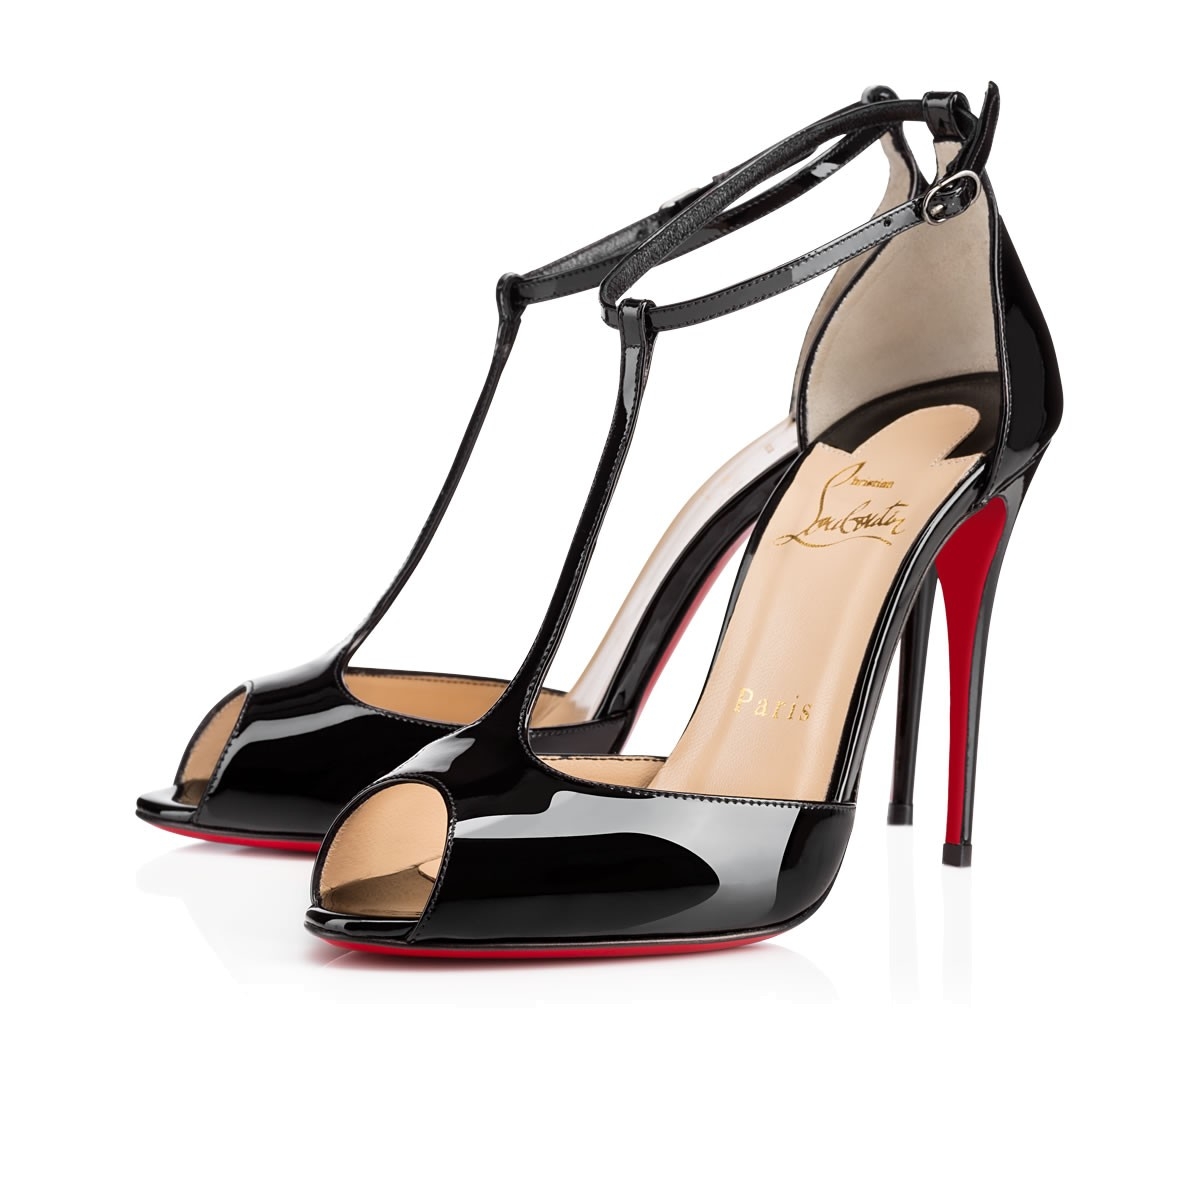 christian louboutin crossover sandals